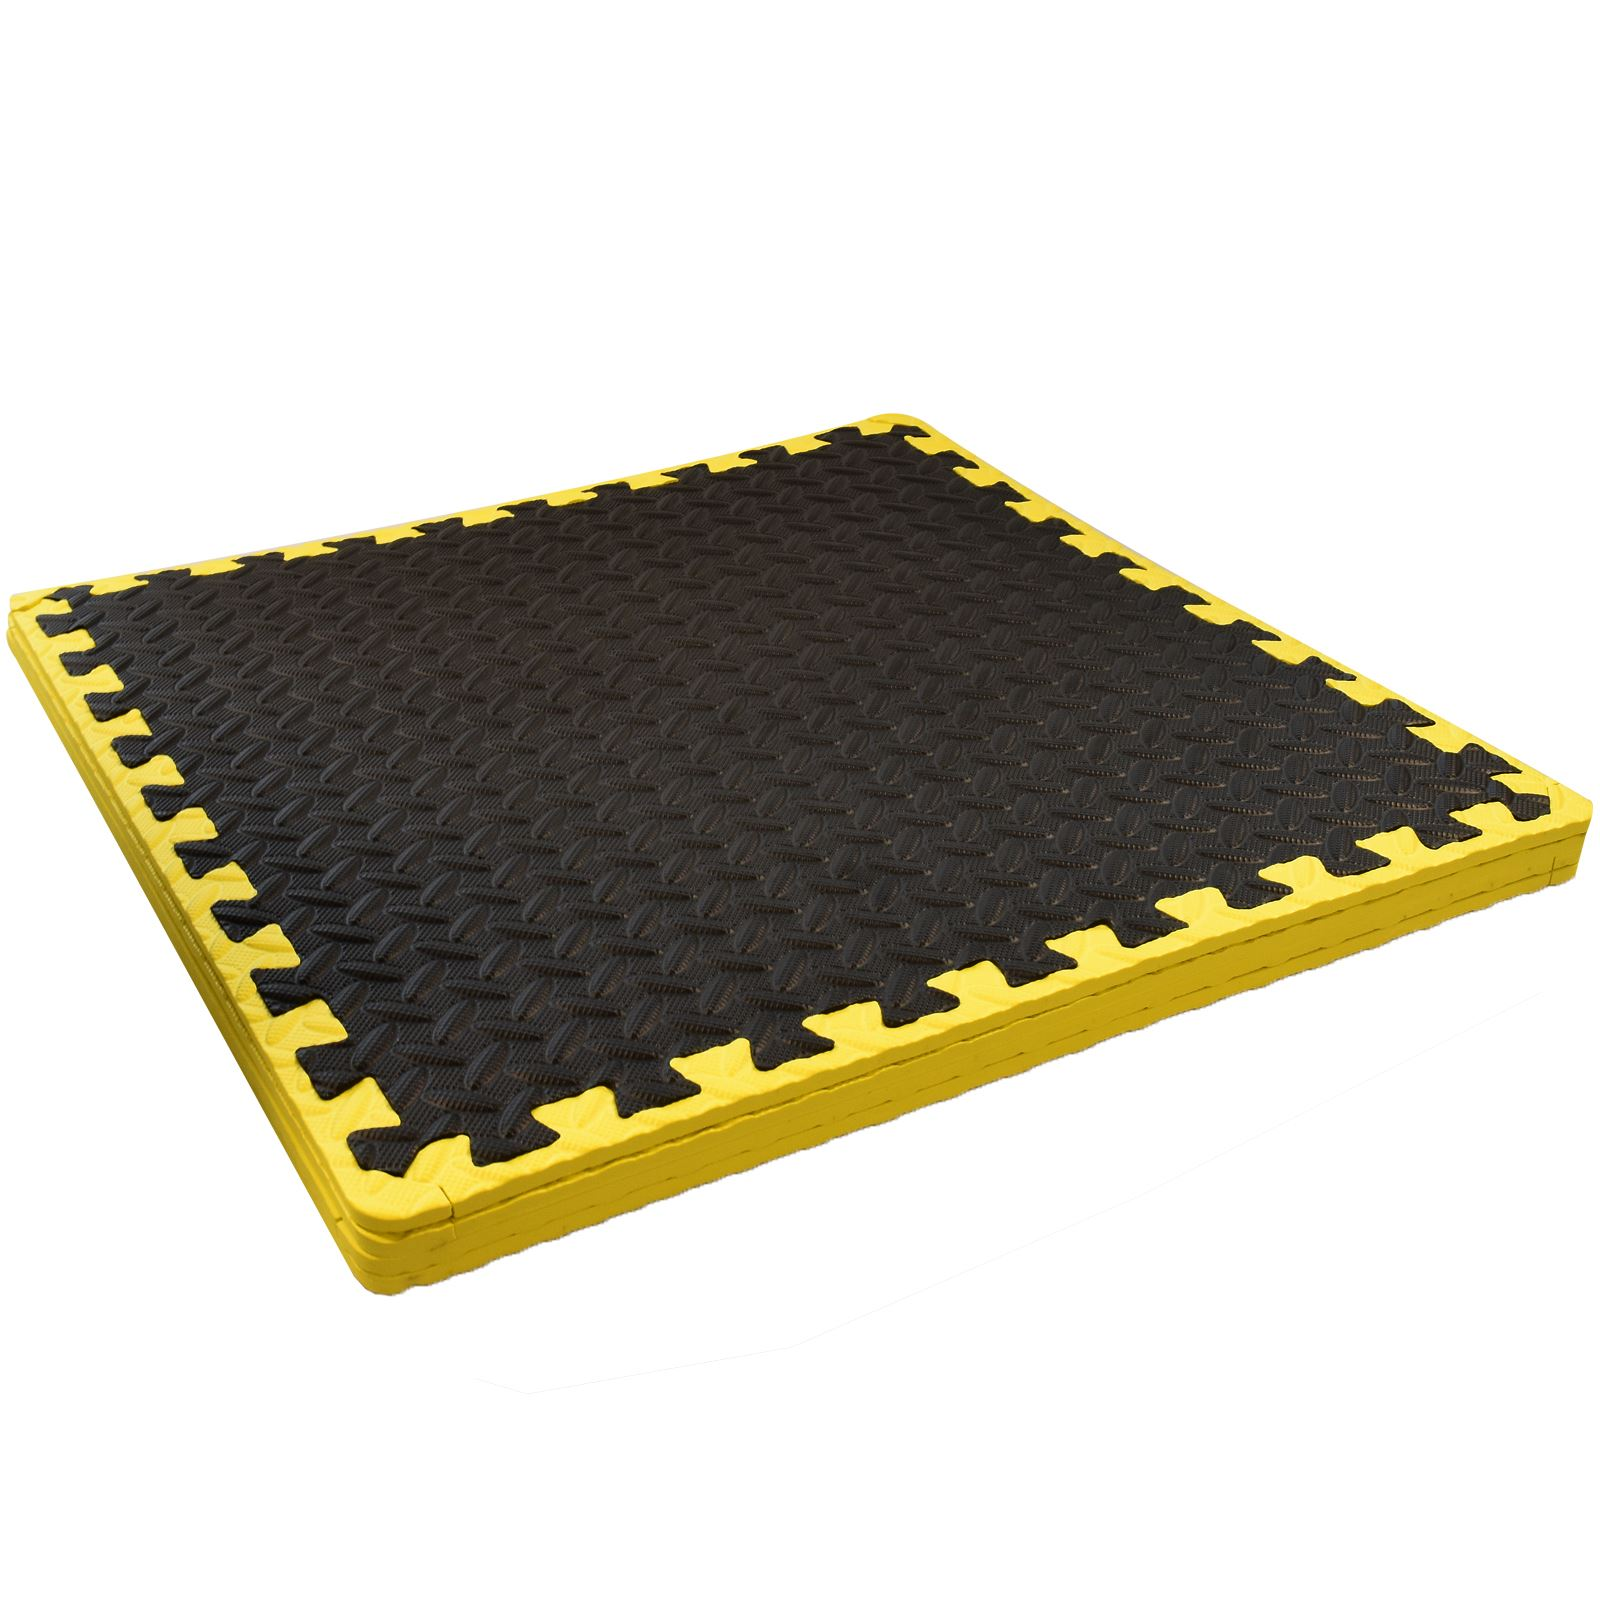 Alfombra Espuma Eva Floor Mat Soft Interlocking Foam Rubber Tiles Play